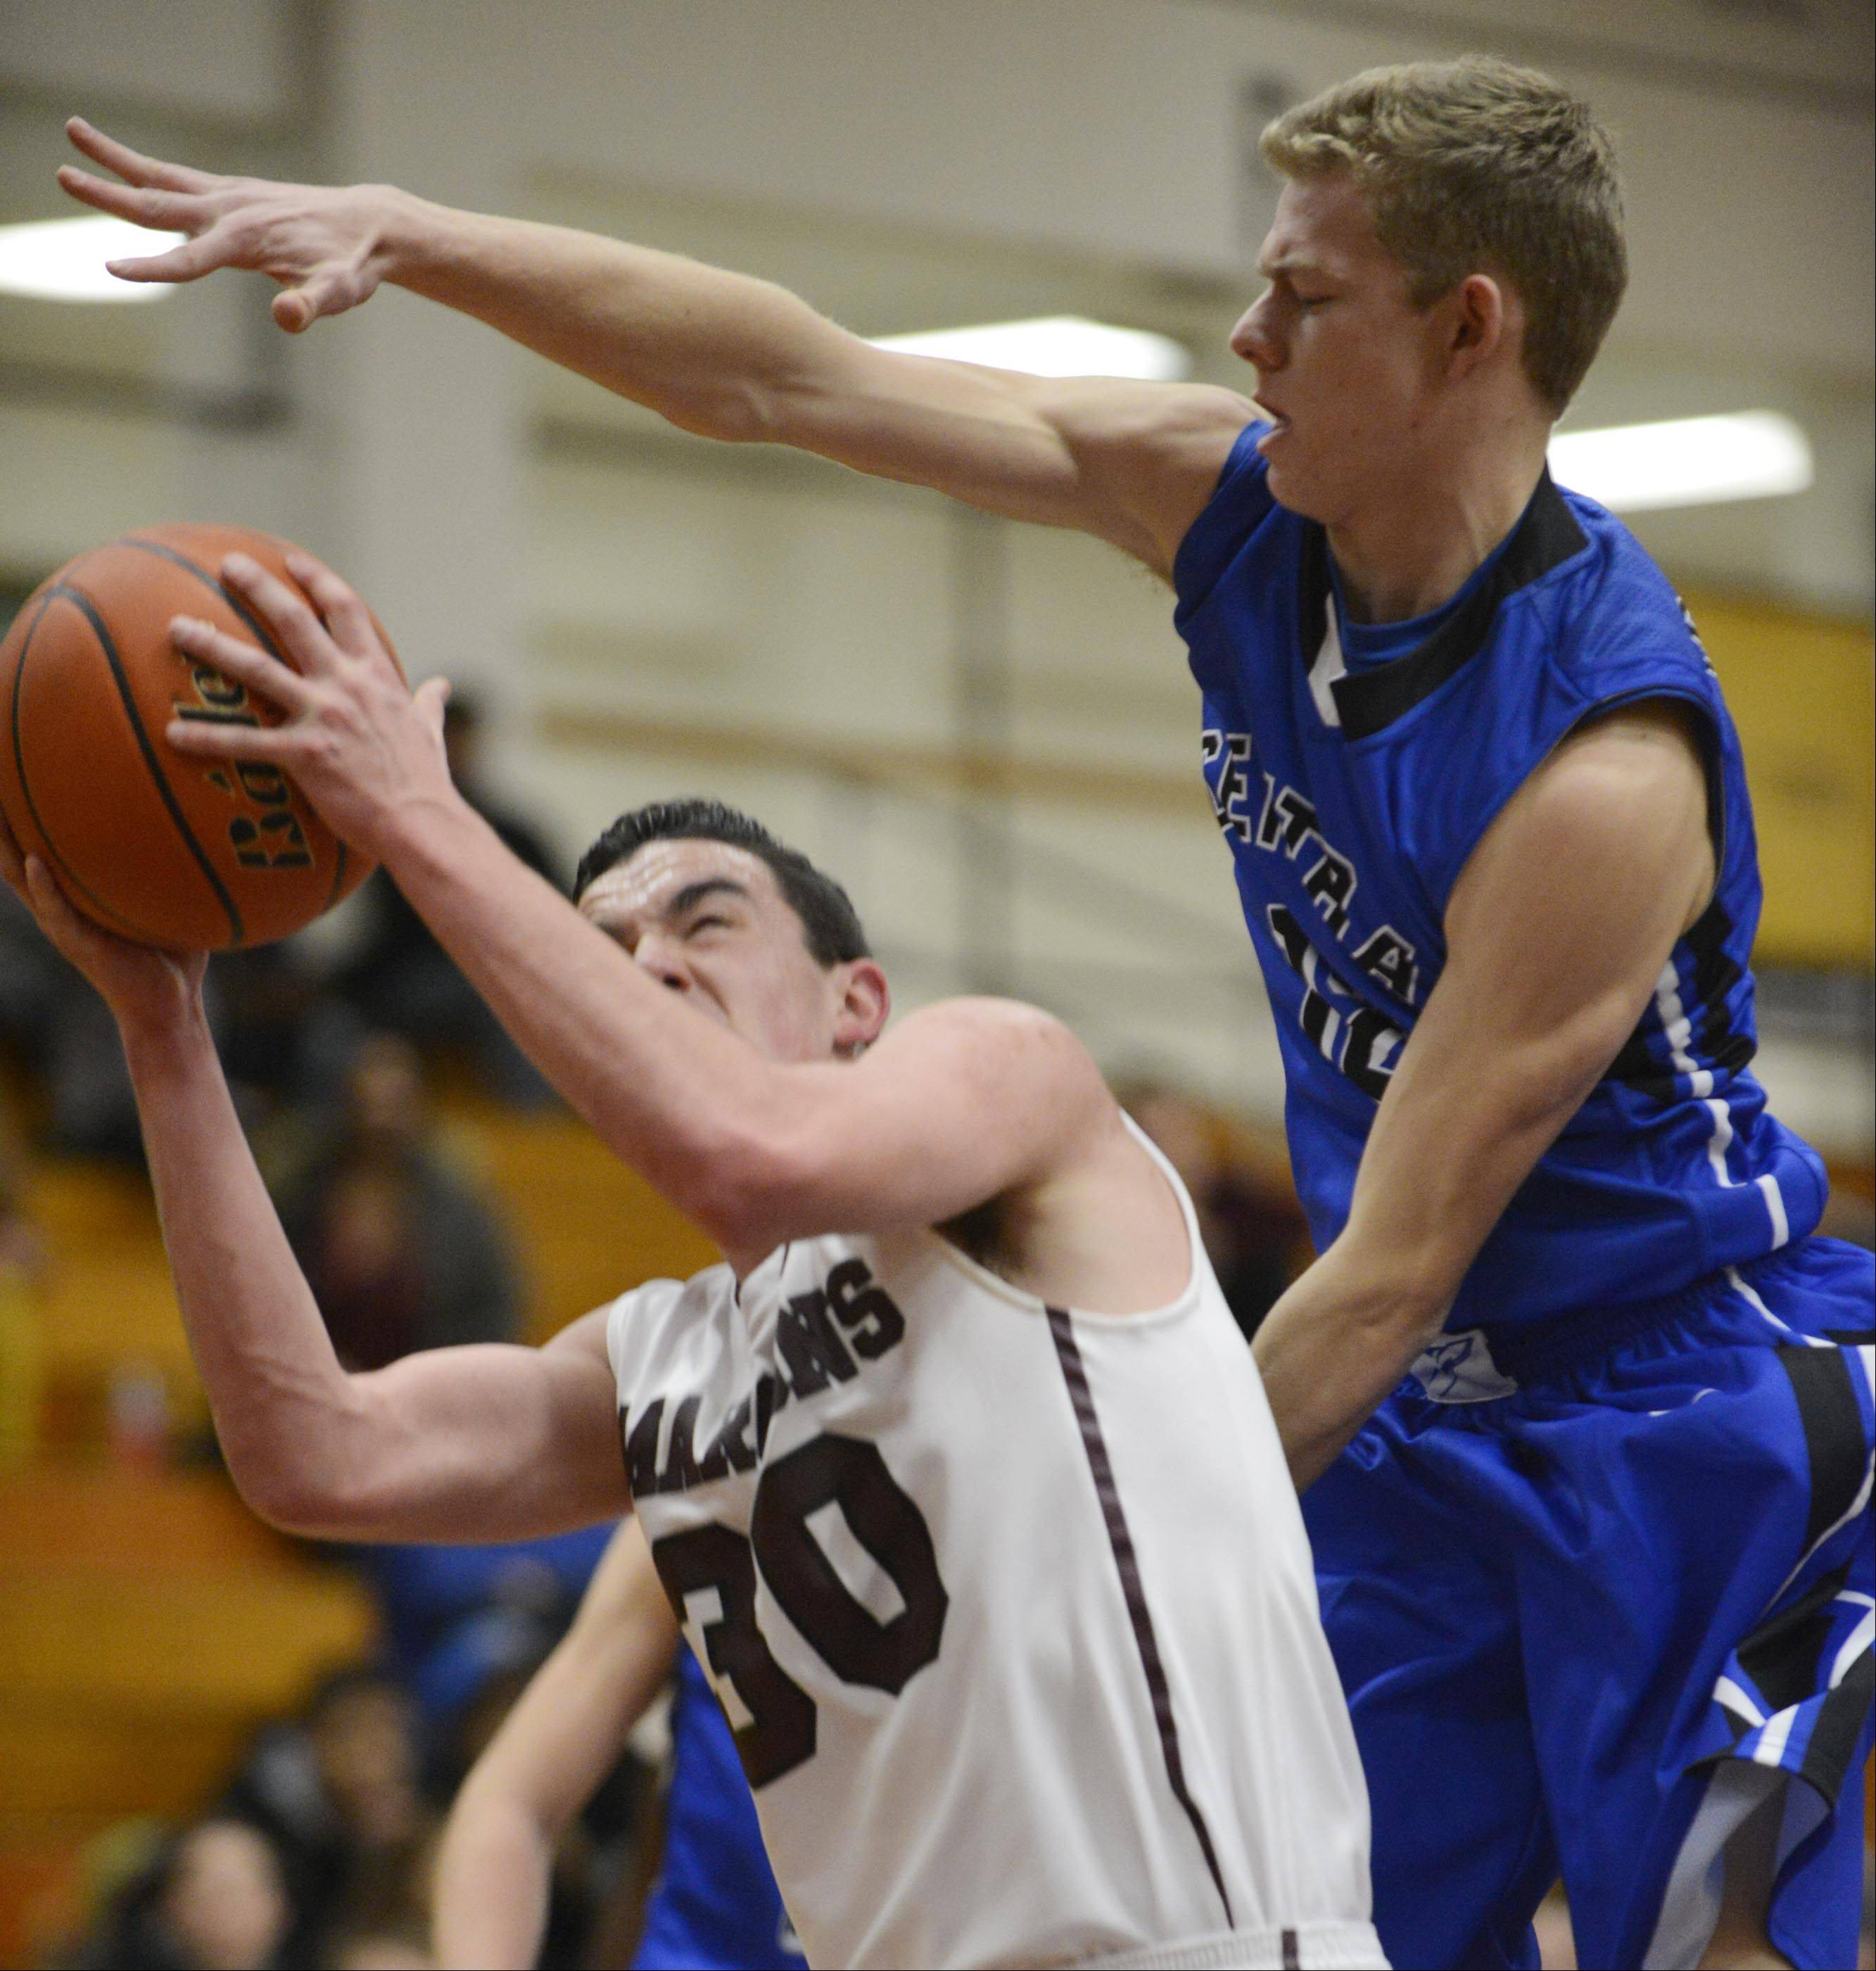 Burlington-Central's Stefan Jochum fouls Elgin's Kiko Mari as he tries to block his shot Tuesday in Elgin.